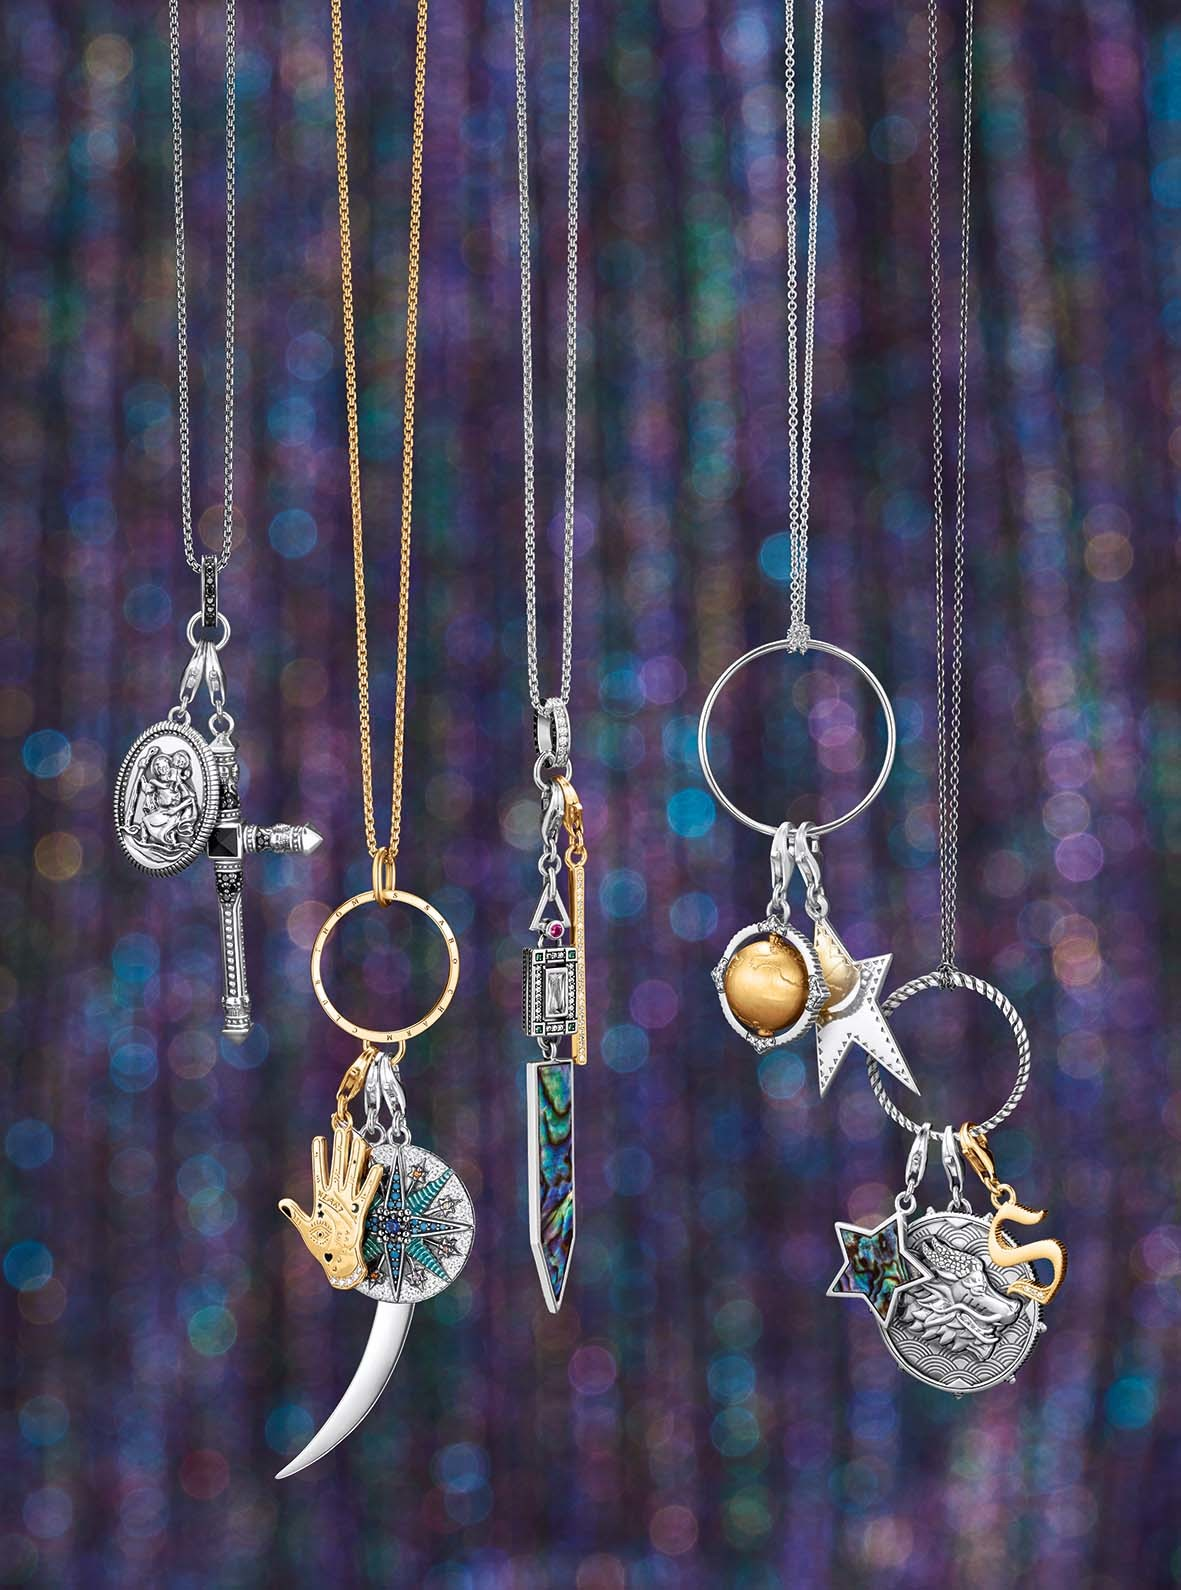 Joyas de Generation Charm Club de Thomas Sabo.